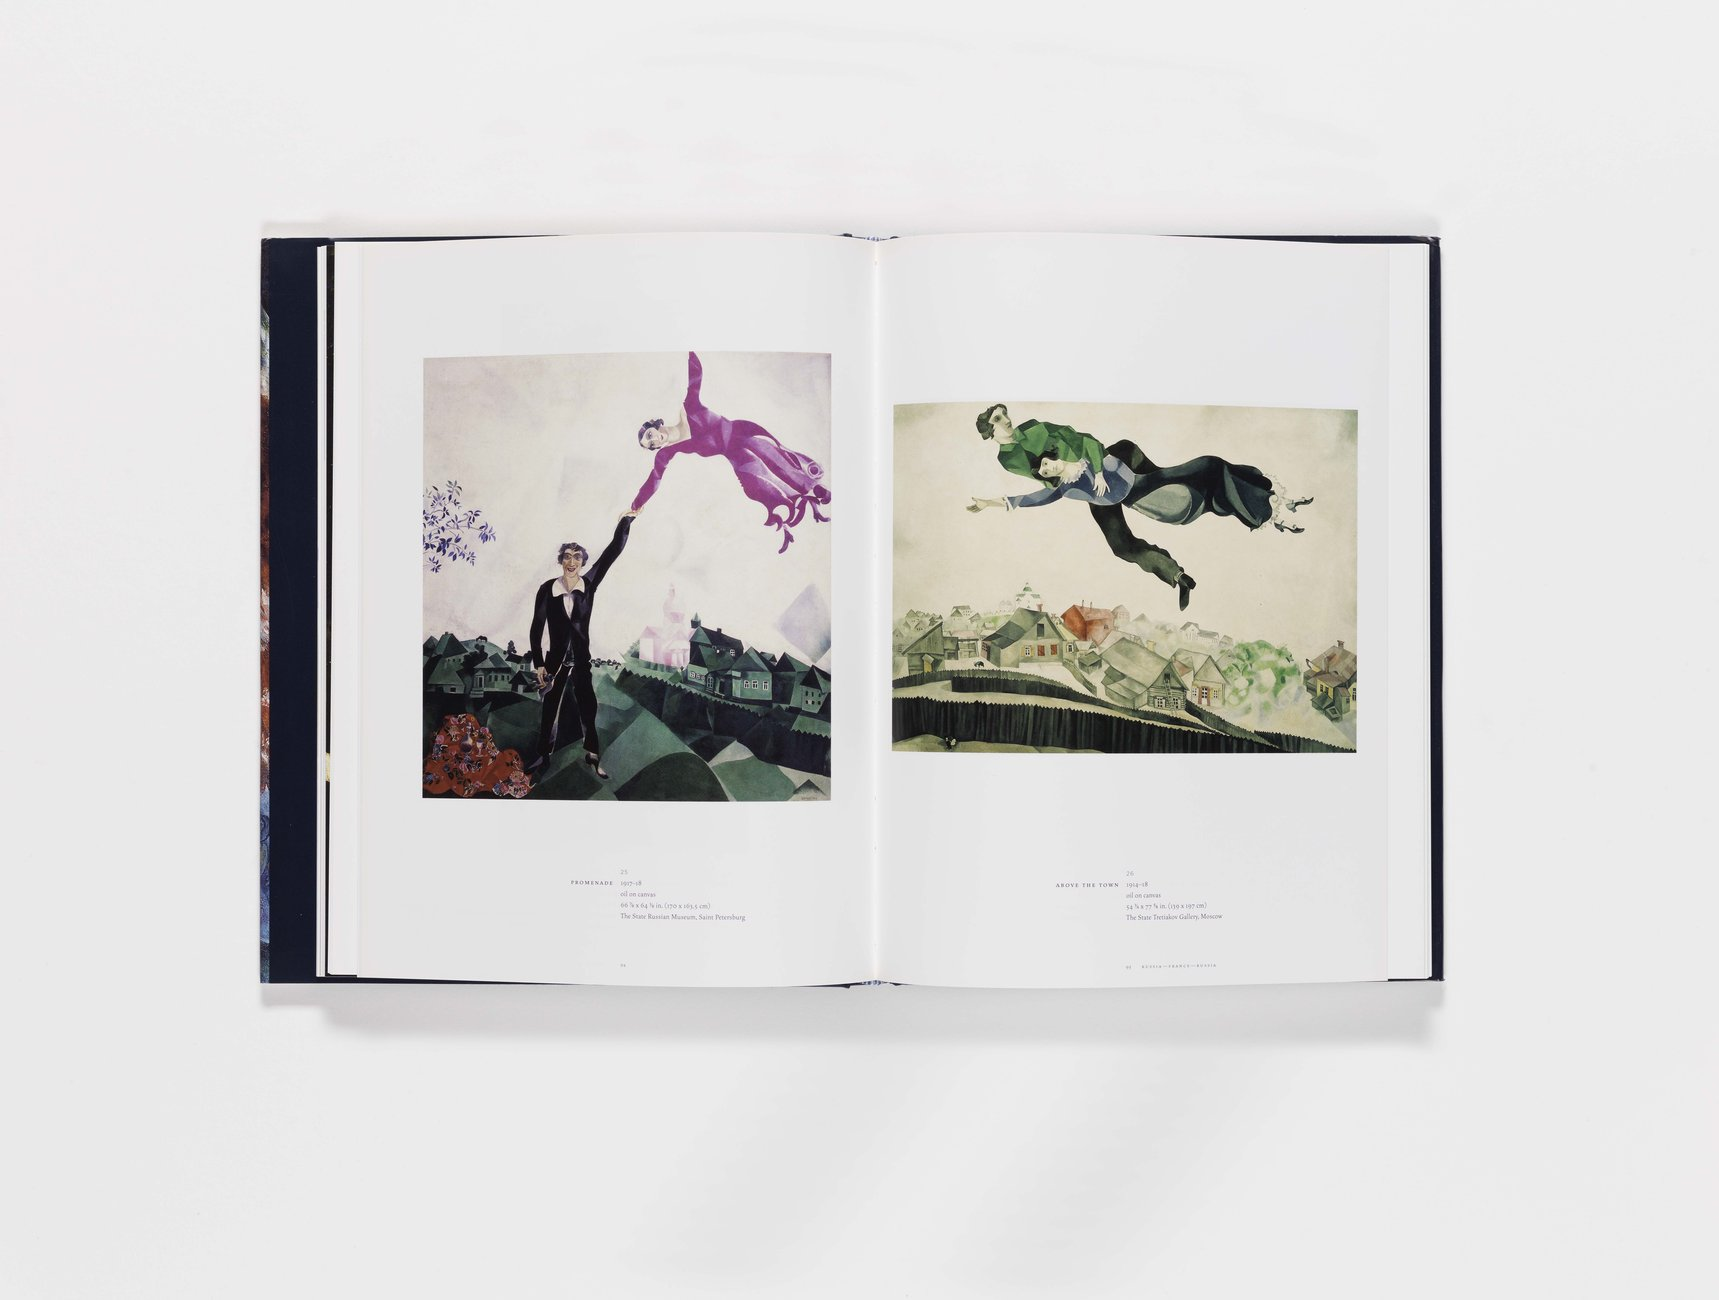 Marc Chagall publication pages 94-95